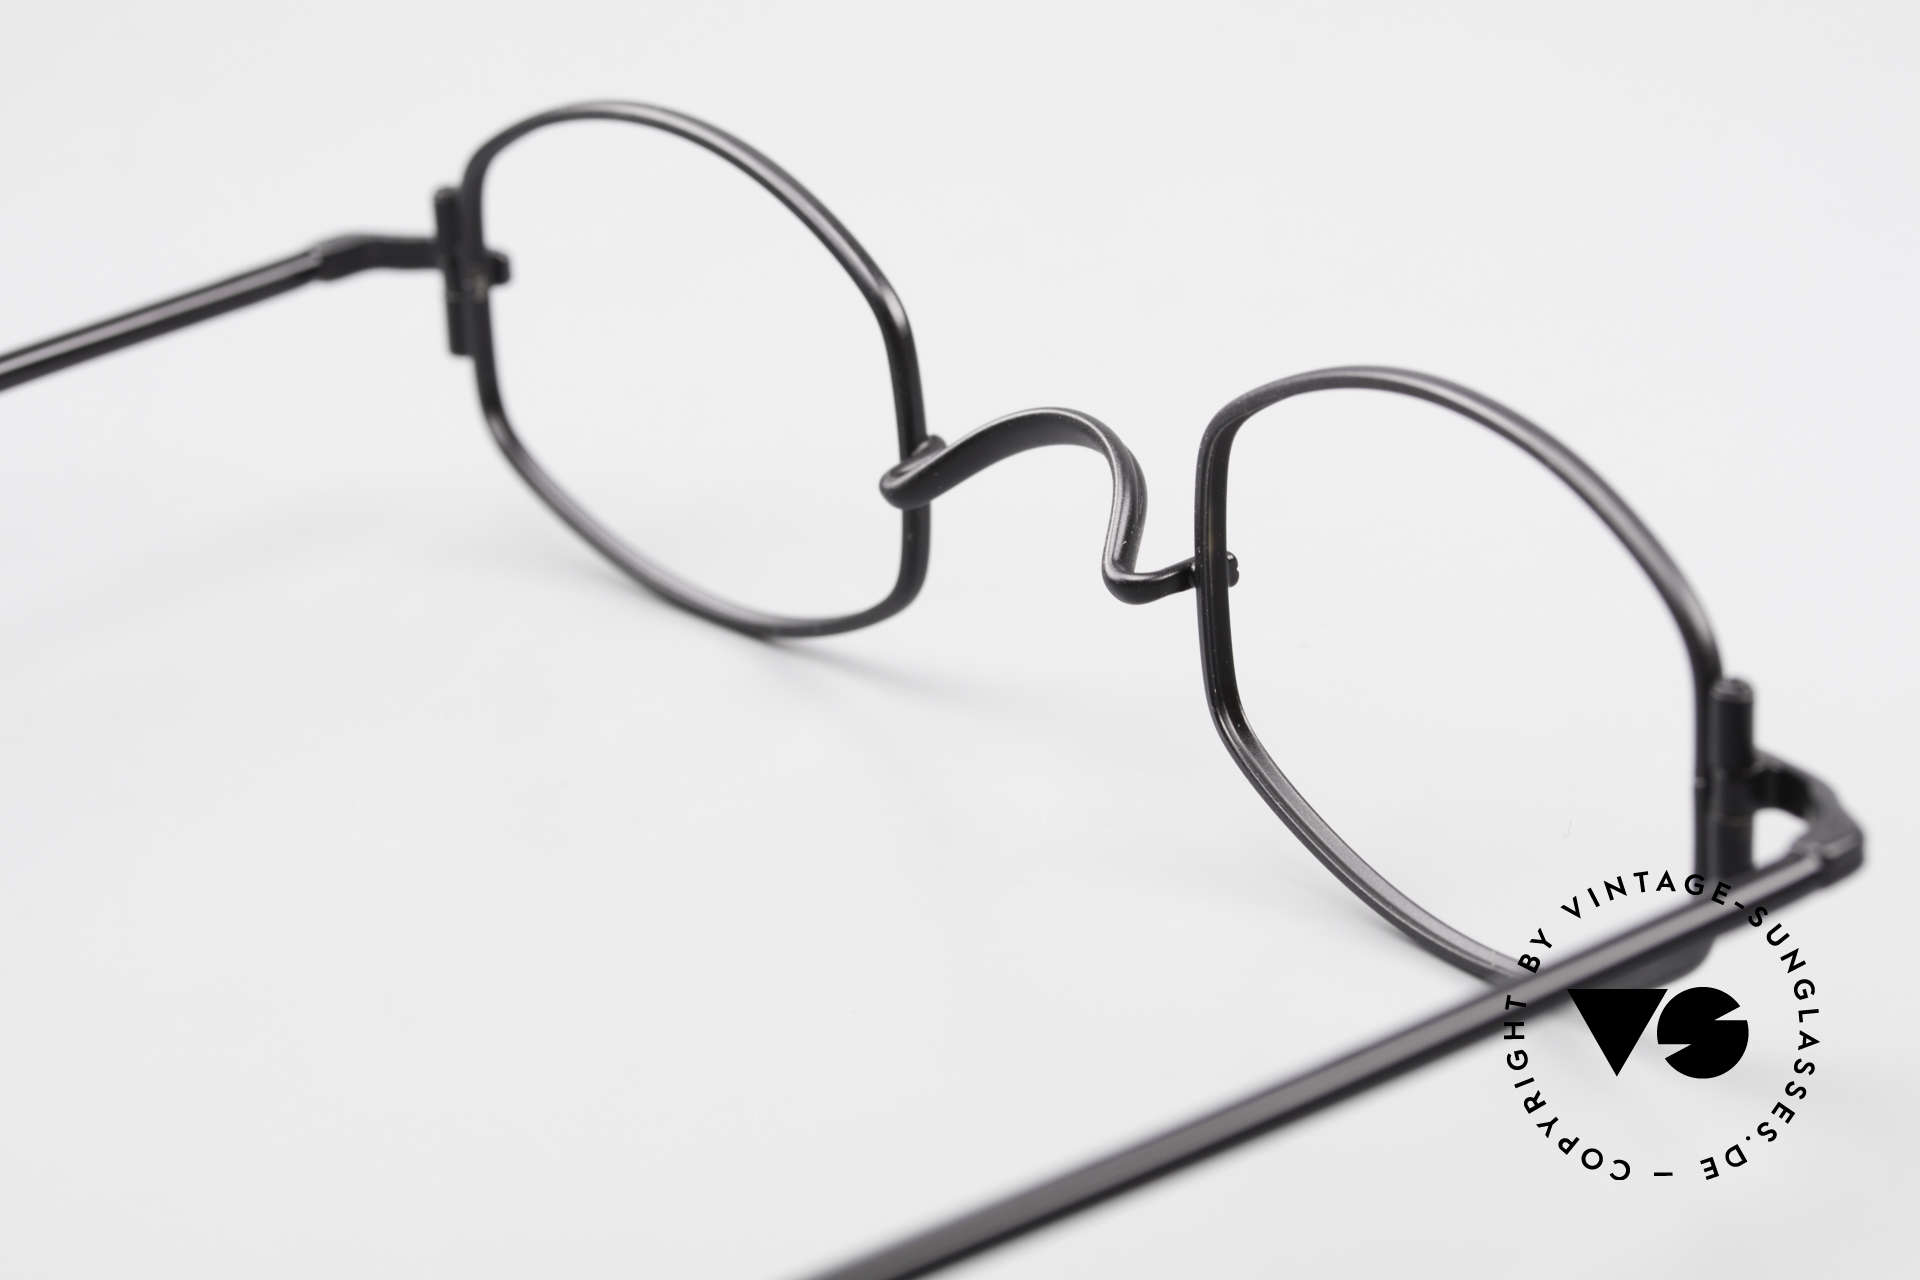 """Lunor XA 03 Rare Old Eyewear Classic, the frame front / frame design looks like a """"LYING TON"""", Made for Men and Women"""